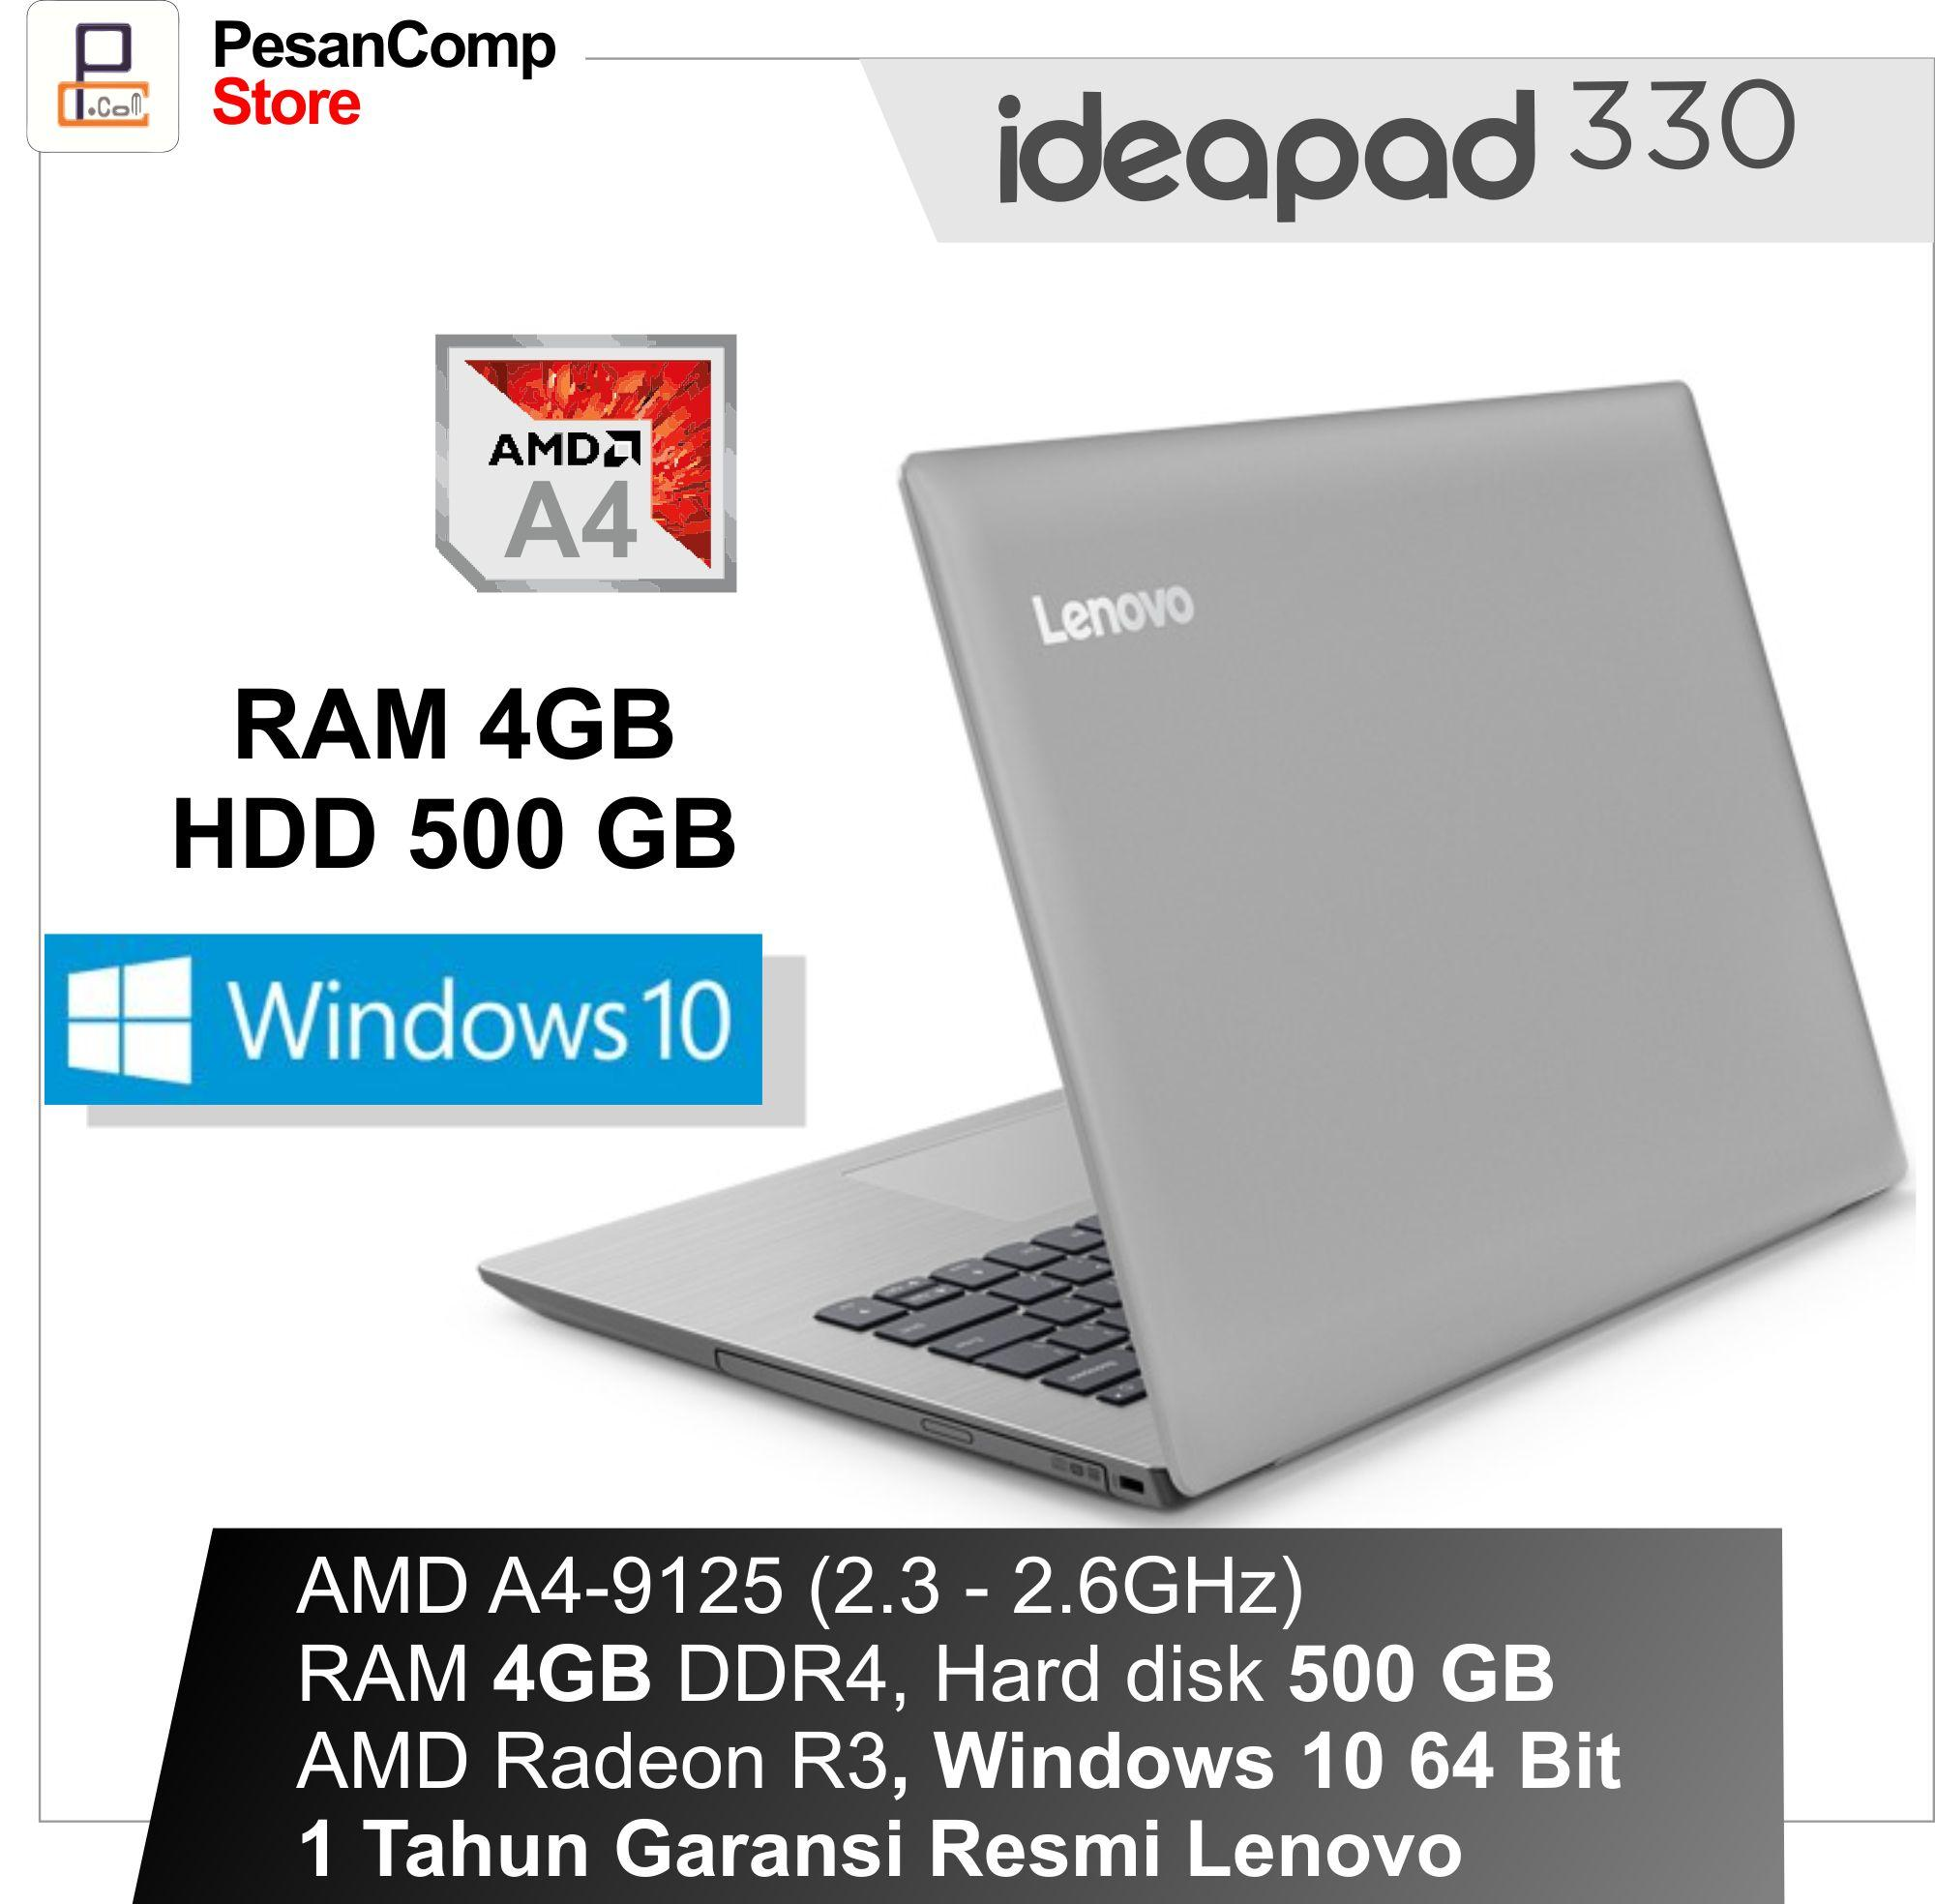 Lenovo IdeaPad IP 330 14AST AMD A4 9125 WINDOWS 10 AMD Radeon